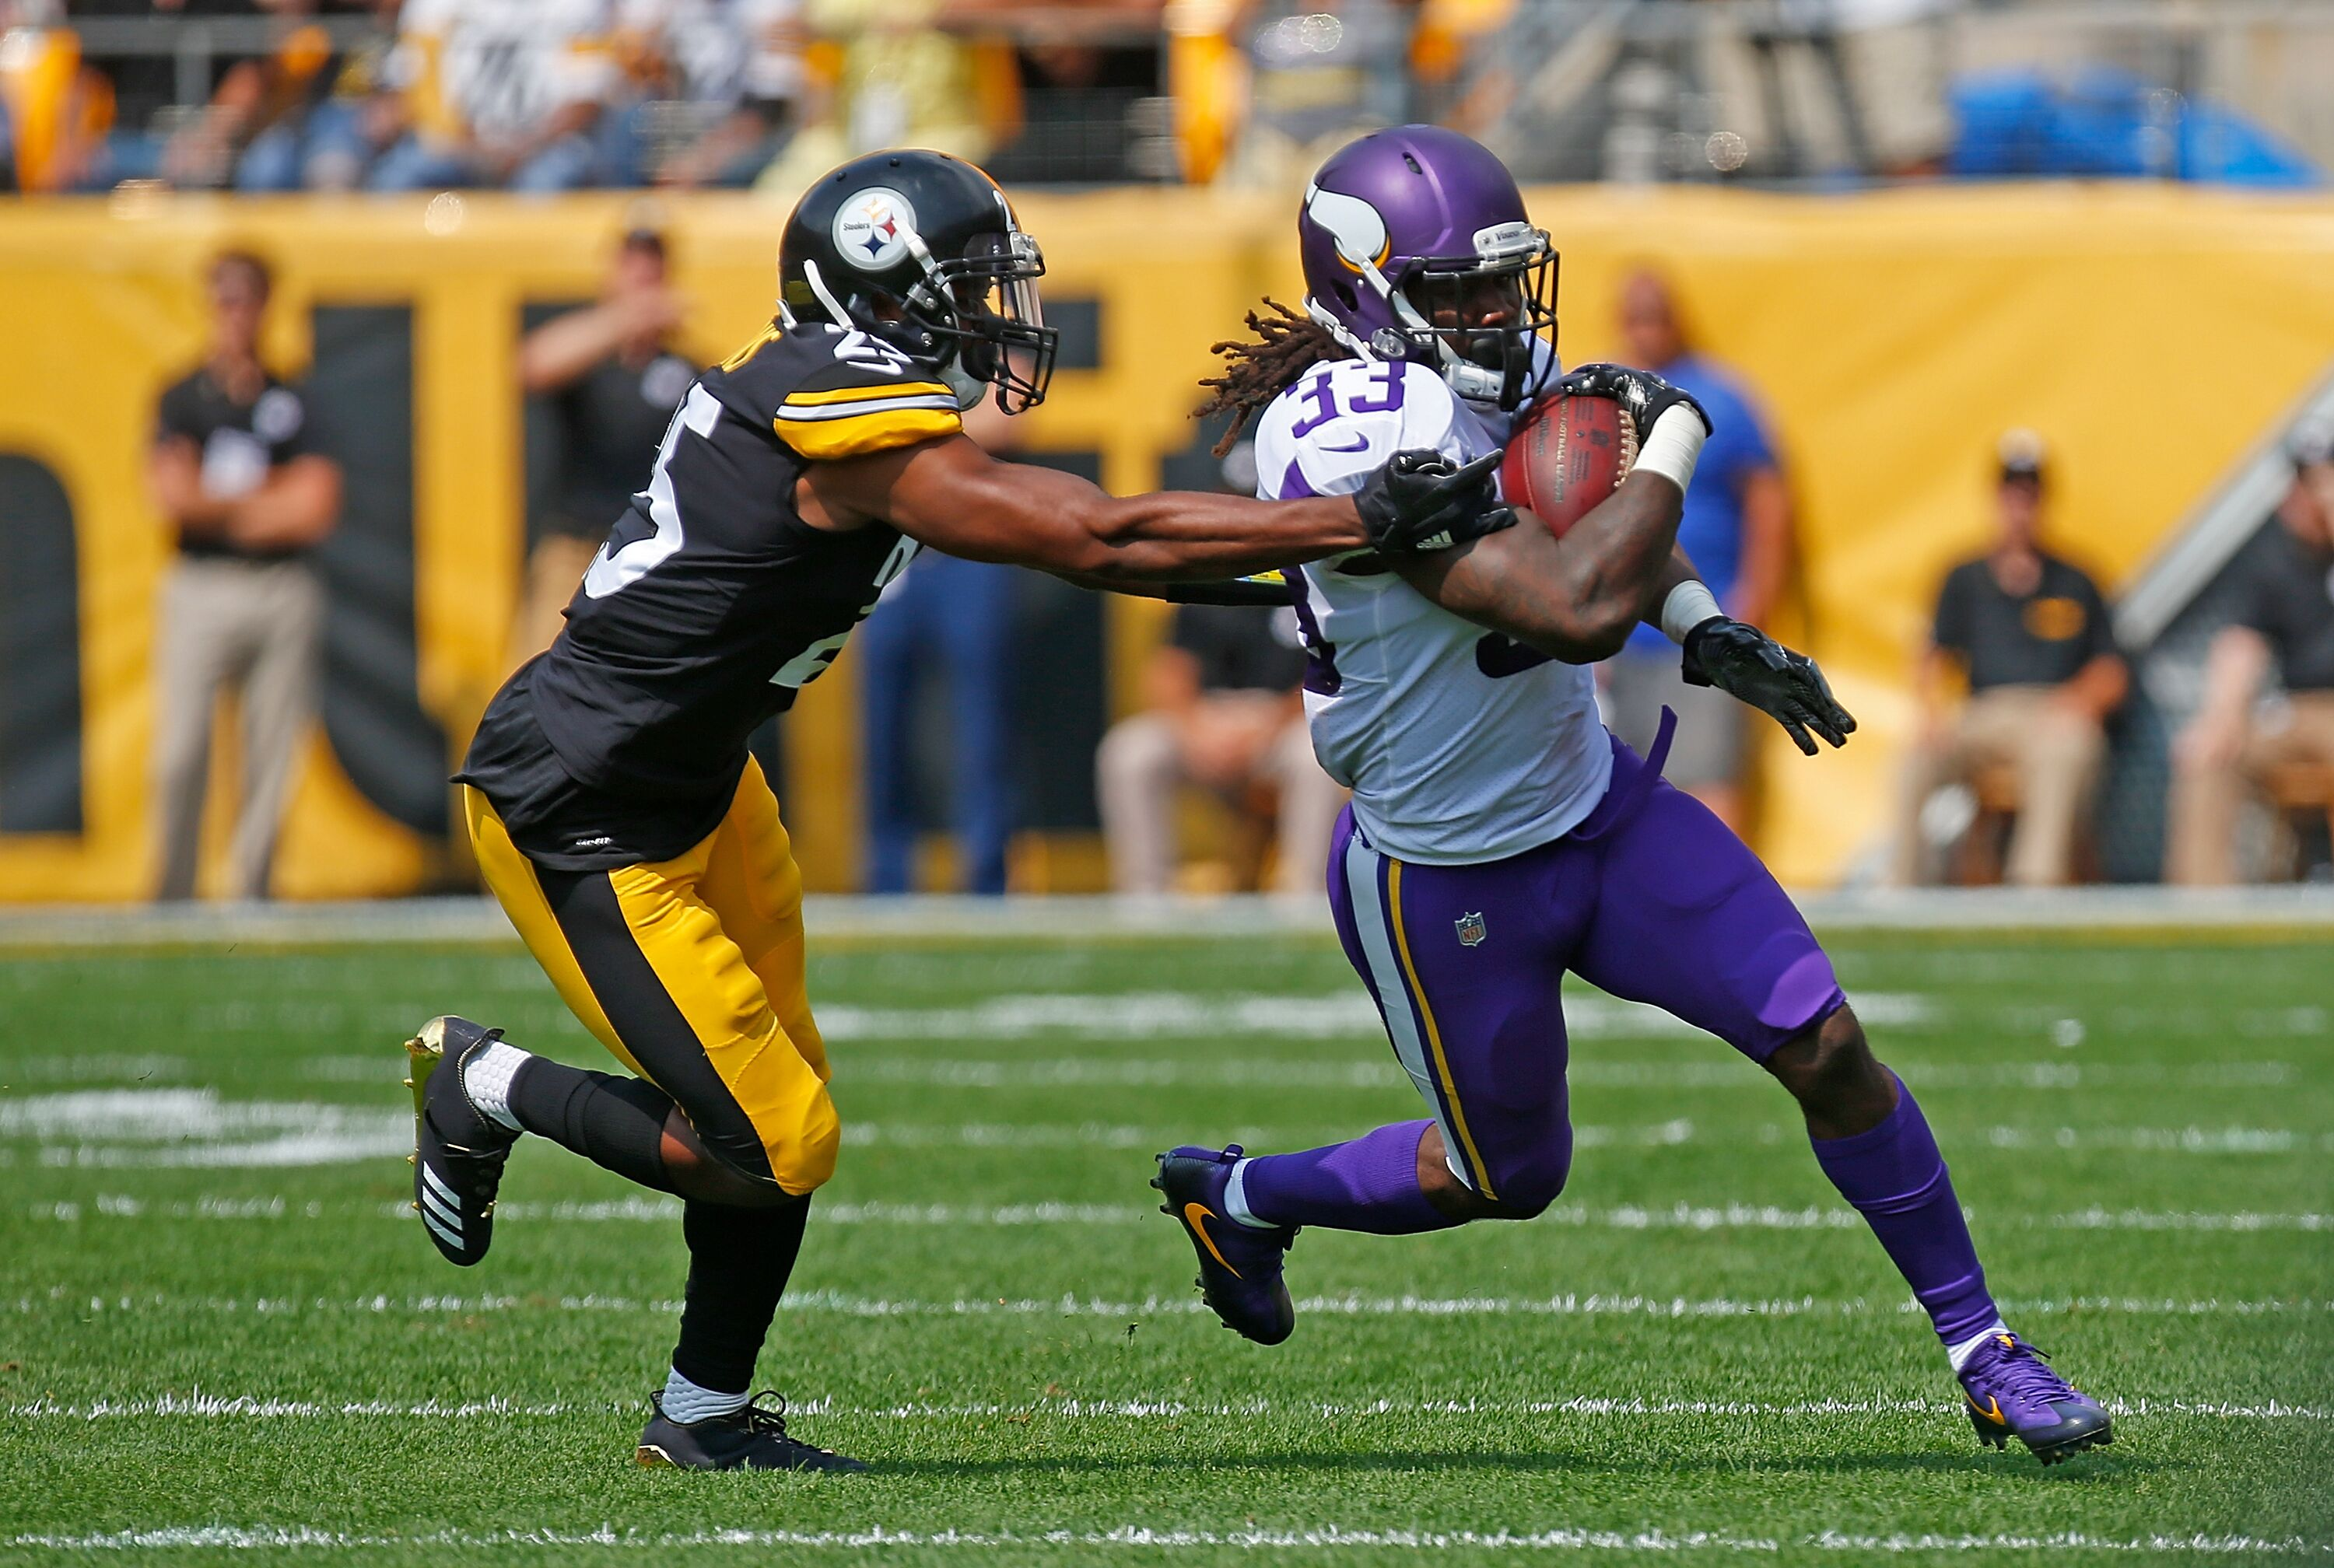 848465780-minnesota-vikings-v-pittsburgh-steelers.jpg